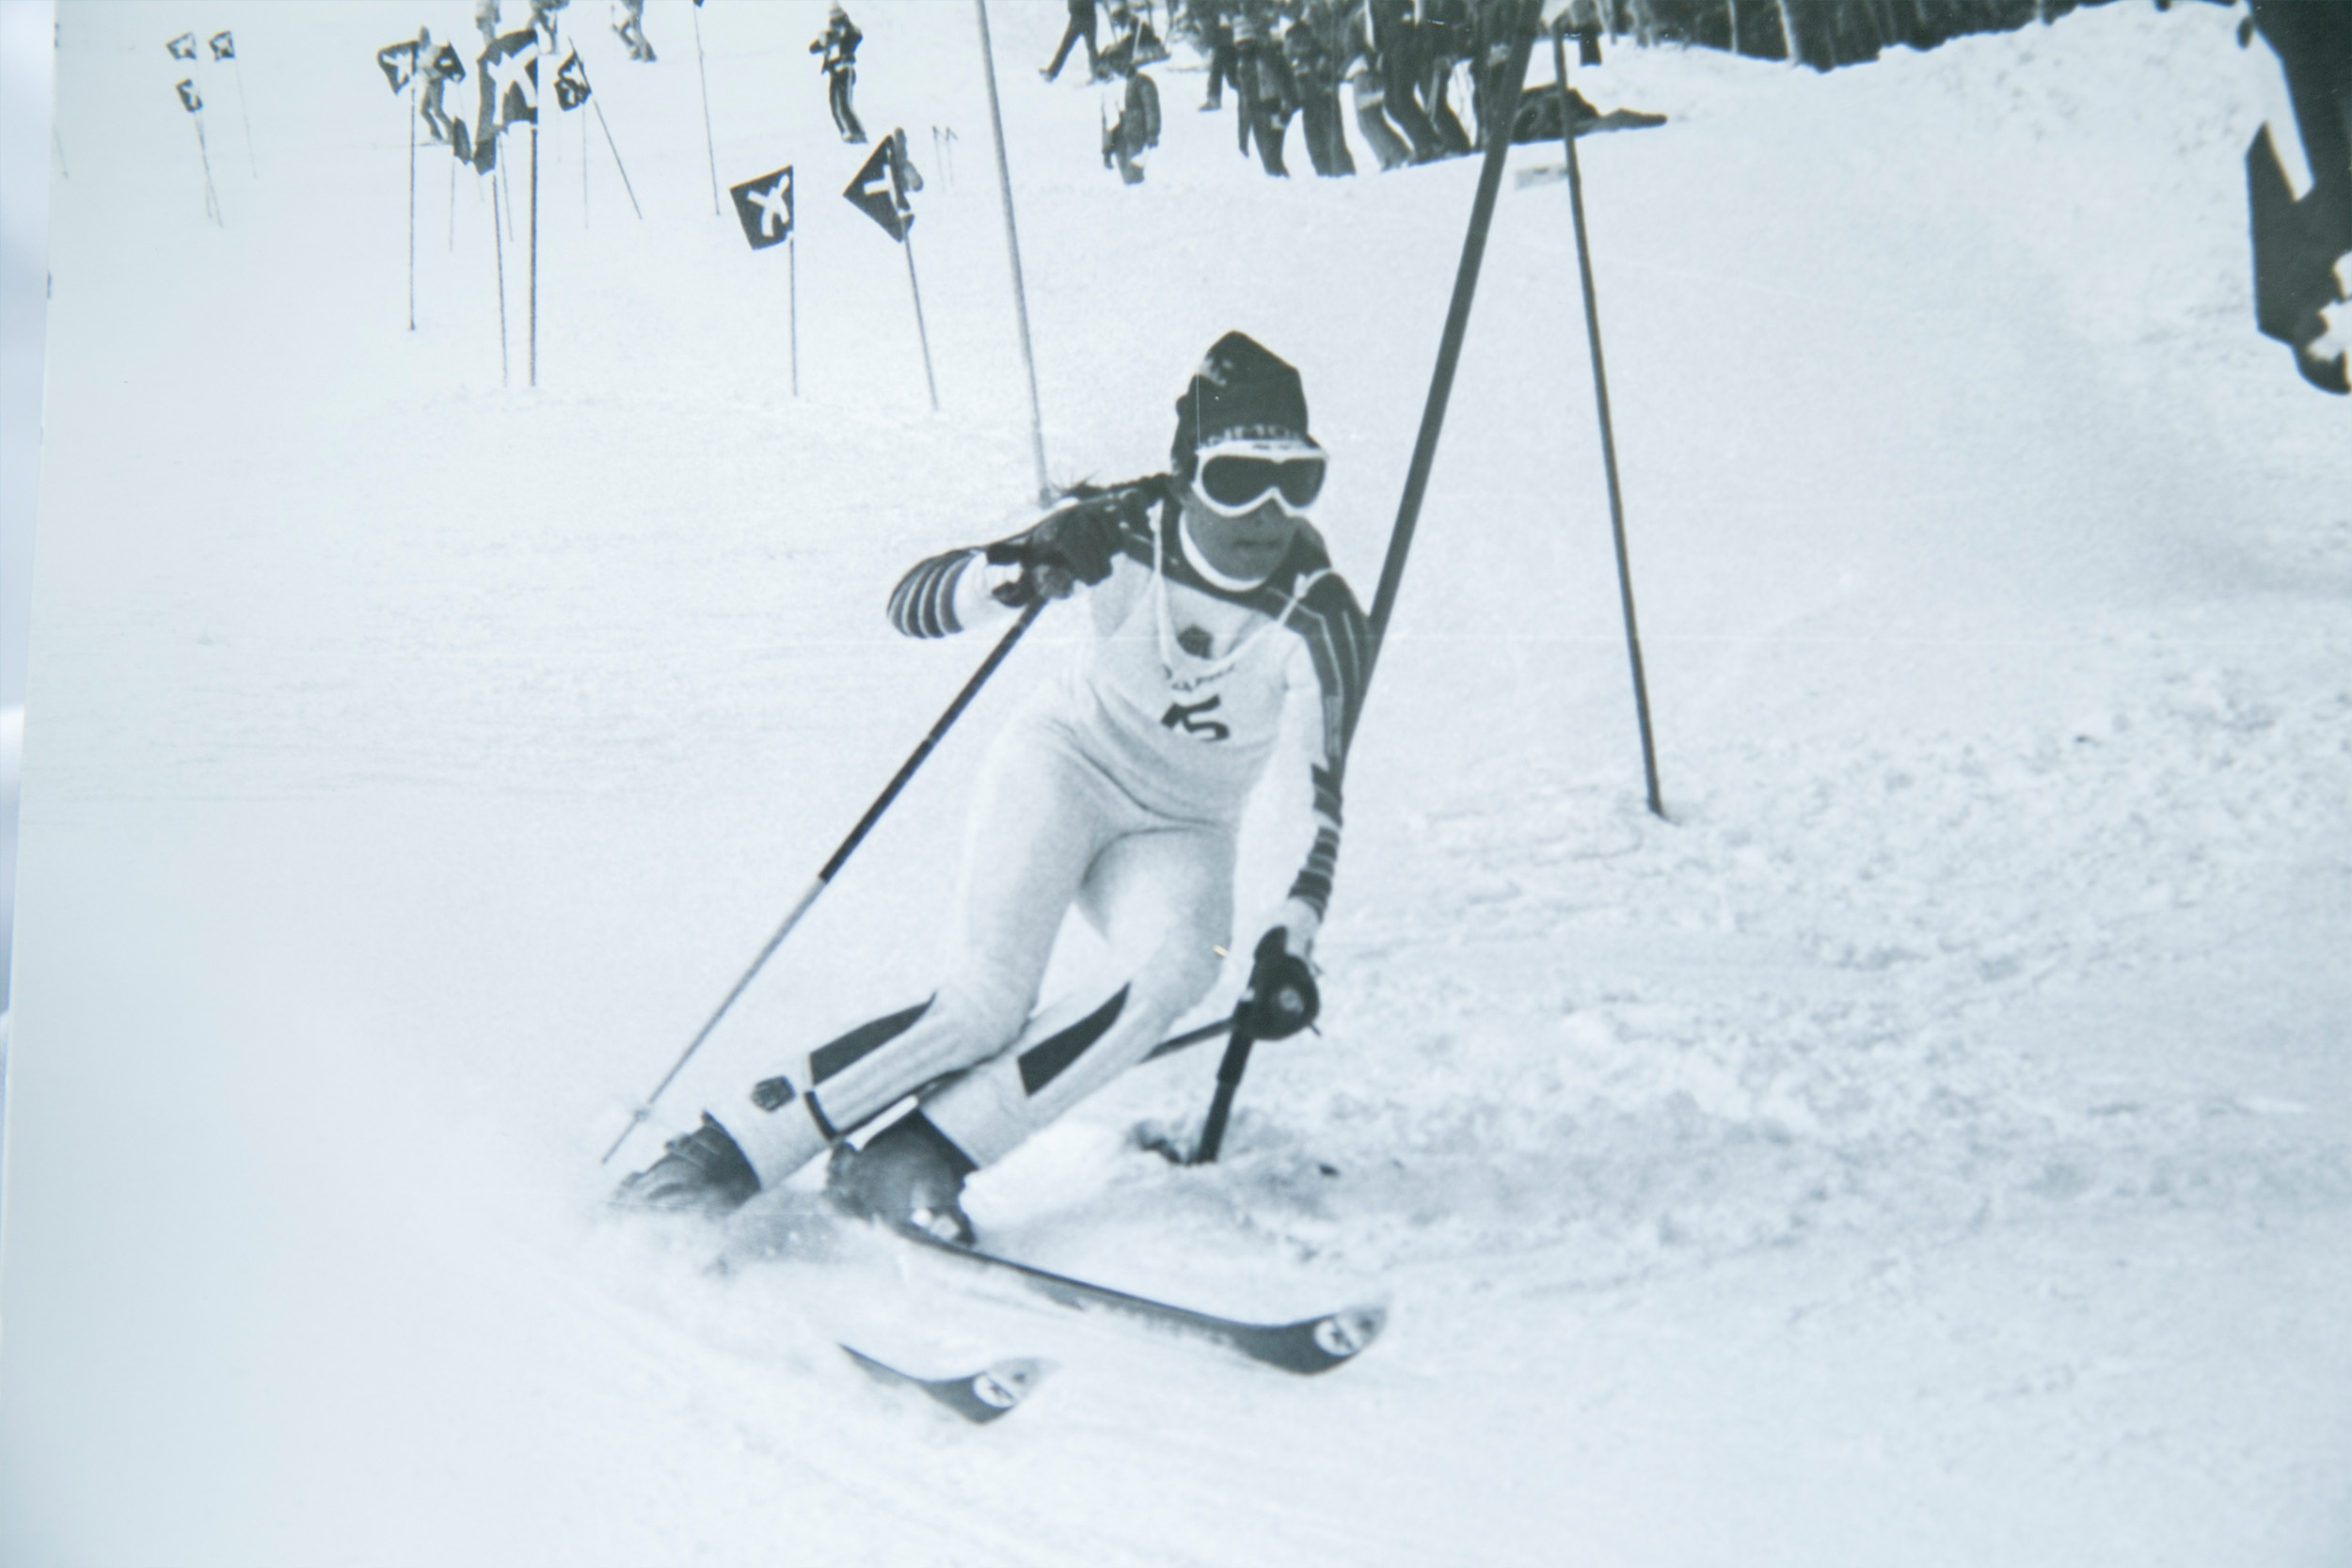 World Cup ski races in the 80s on World Cup